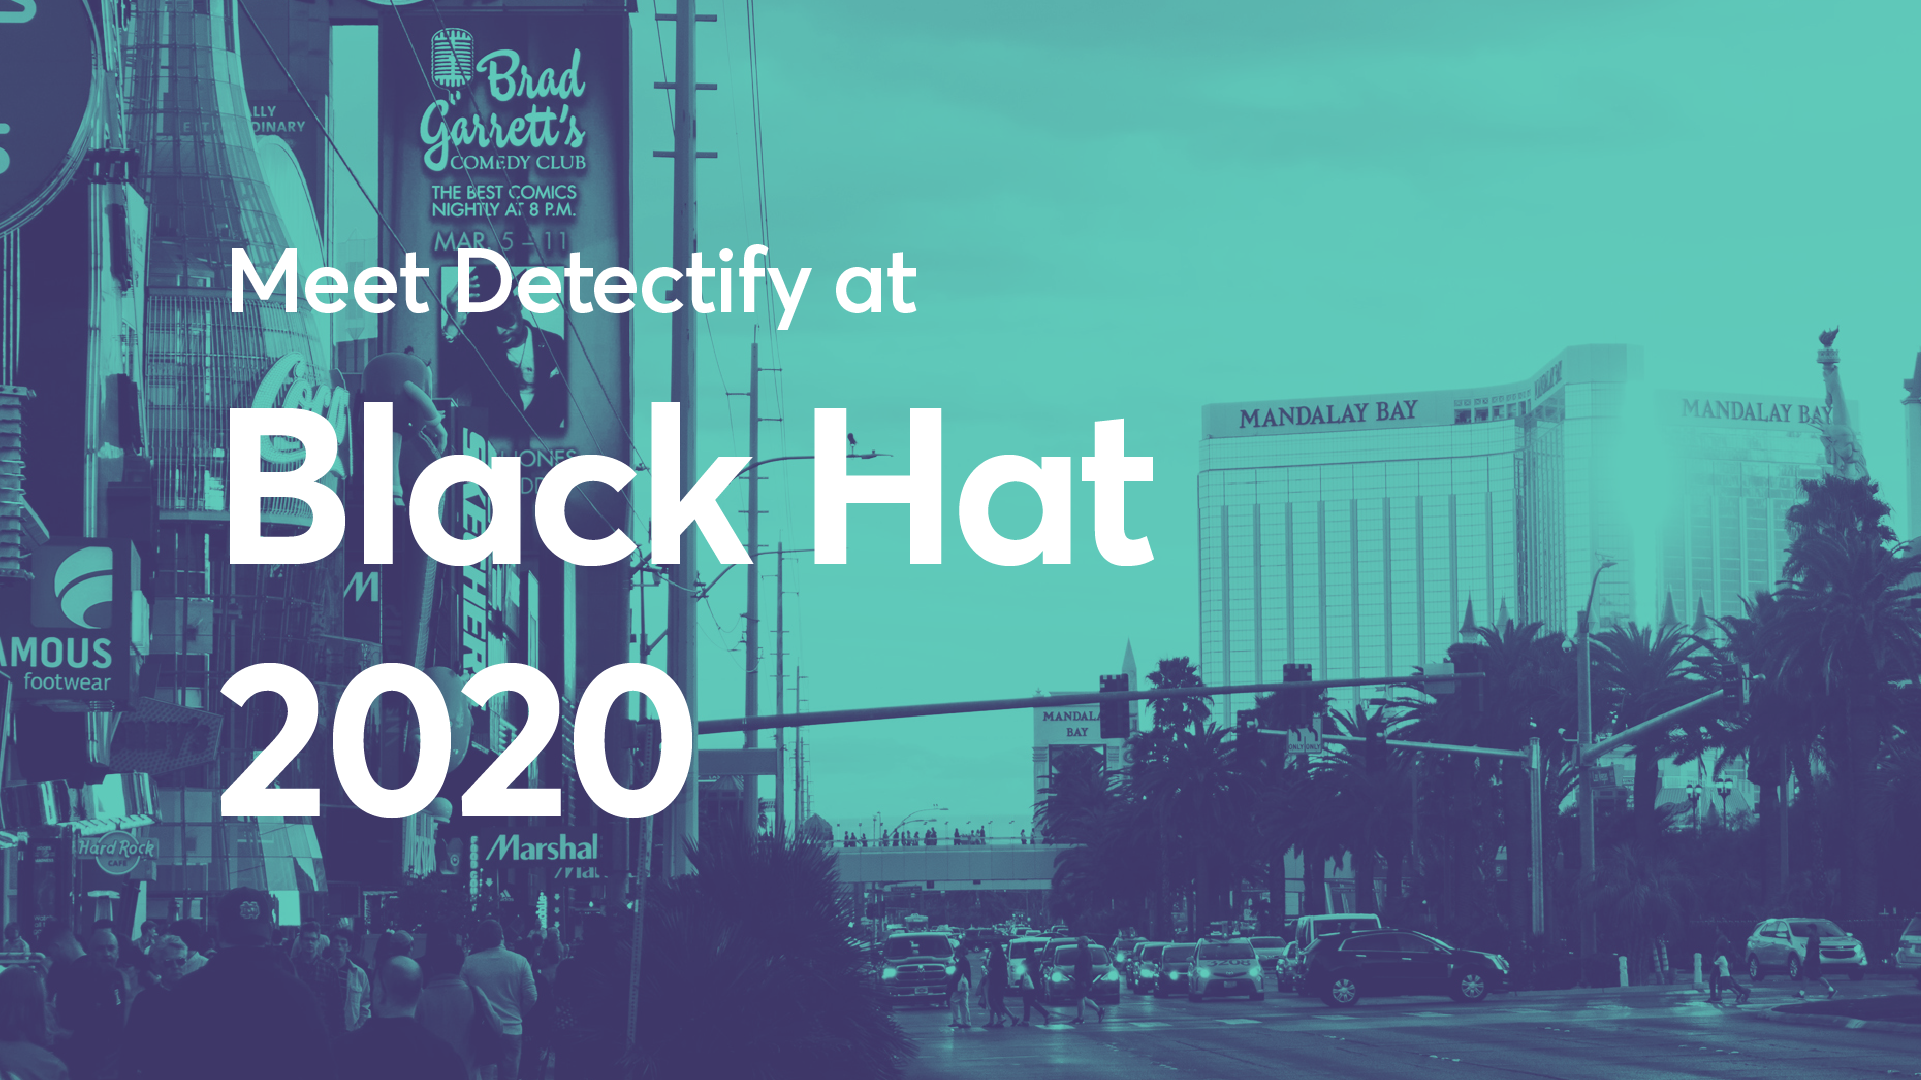 Detectify at Black Hat 2020 cyber security event